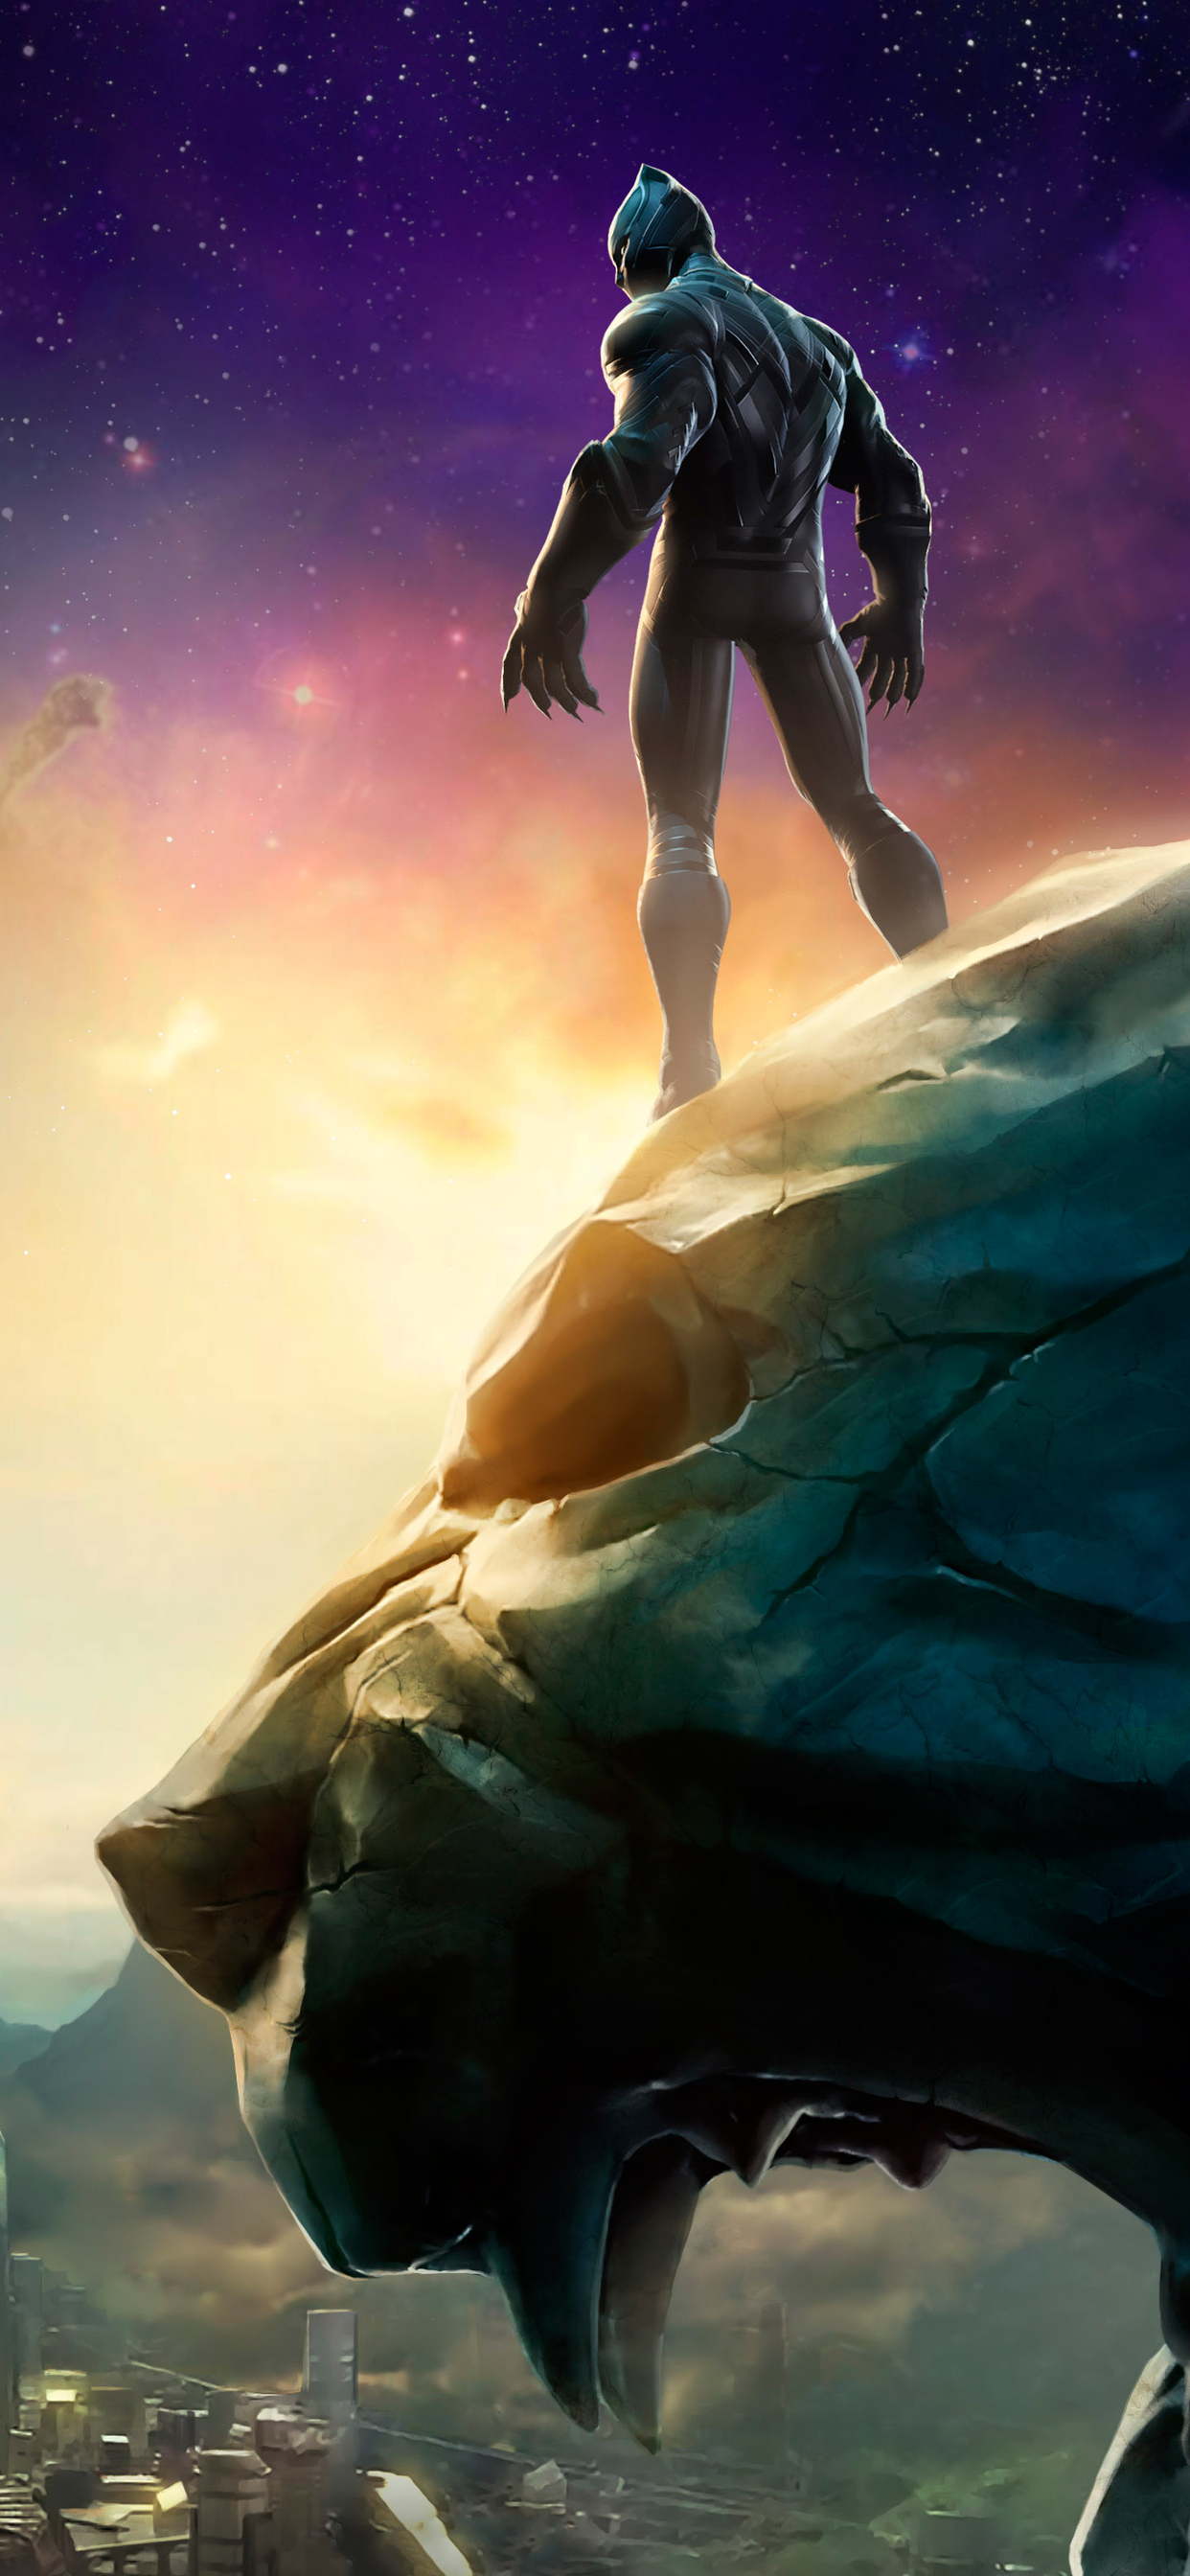 1242x2688 Marvel Black Panther Contest Of Champions Iphone Xs Max Hd 4k Wallpapers Images Backgrounds Photos And Pictures